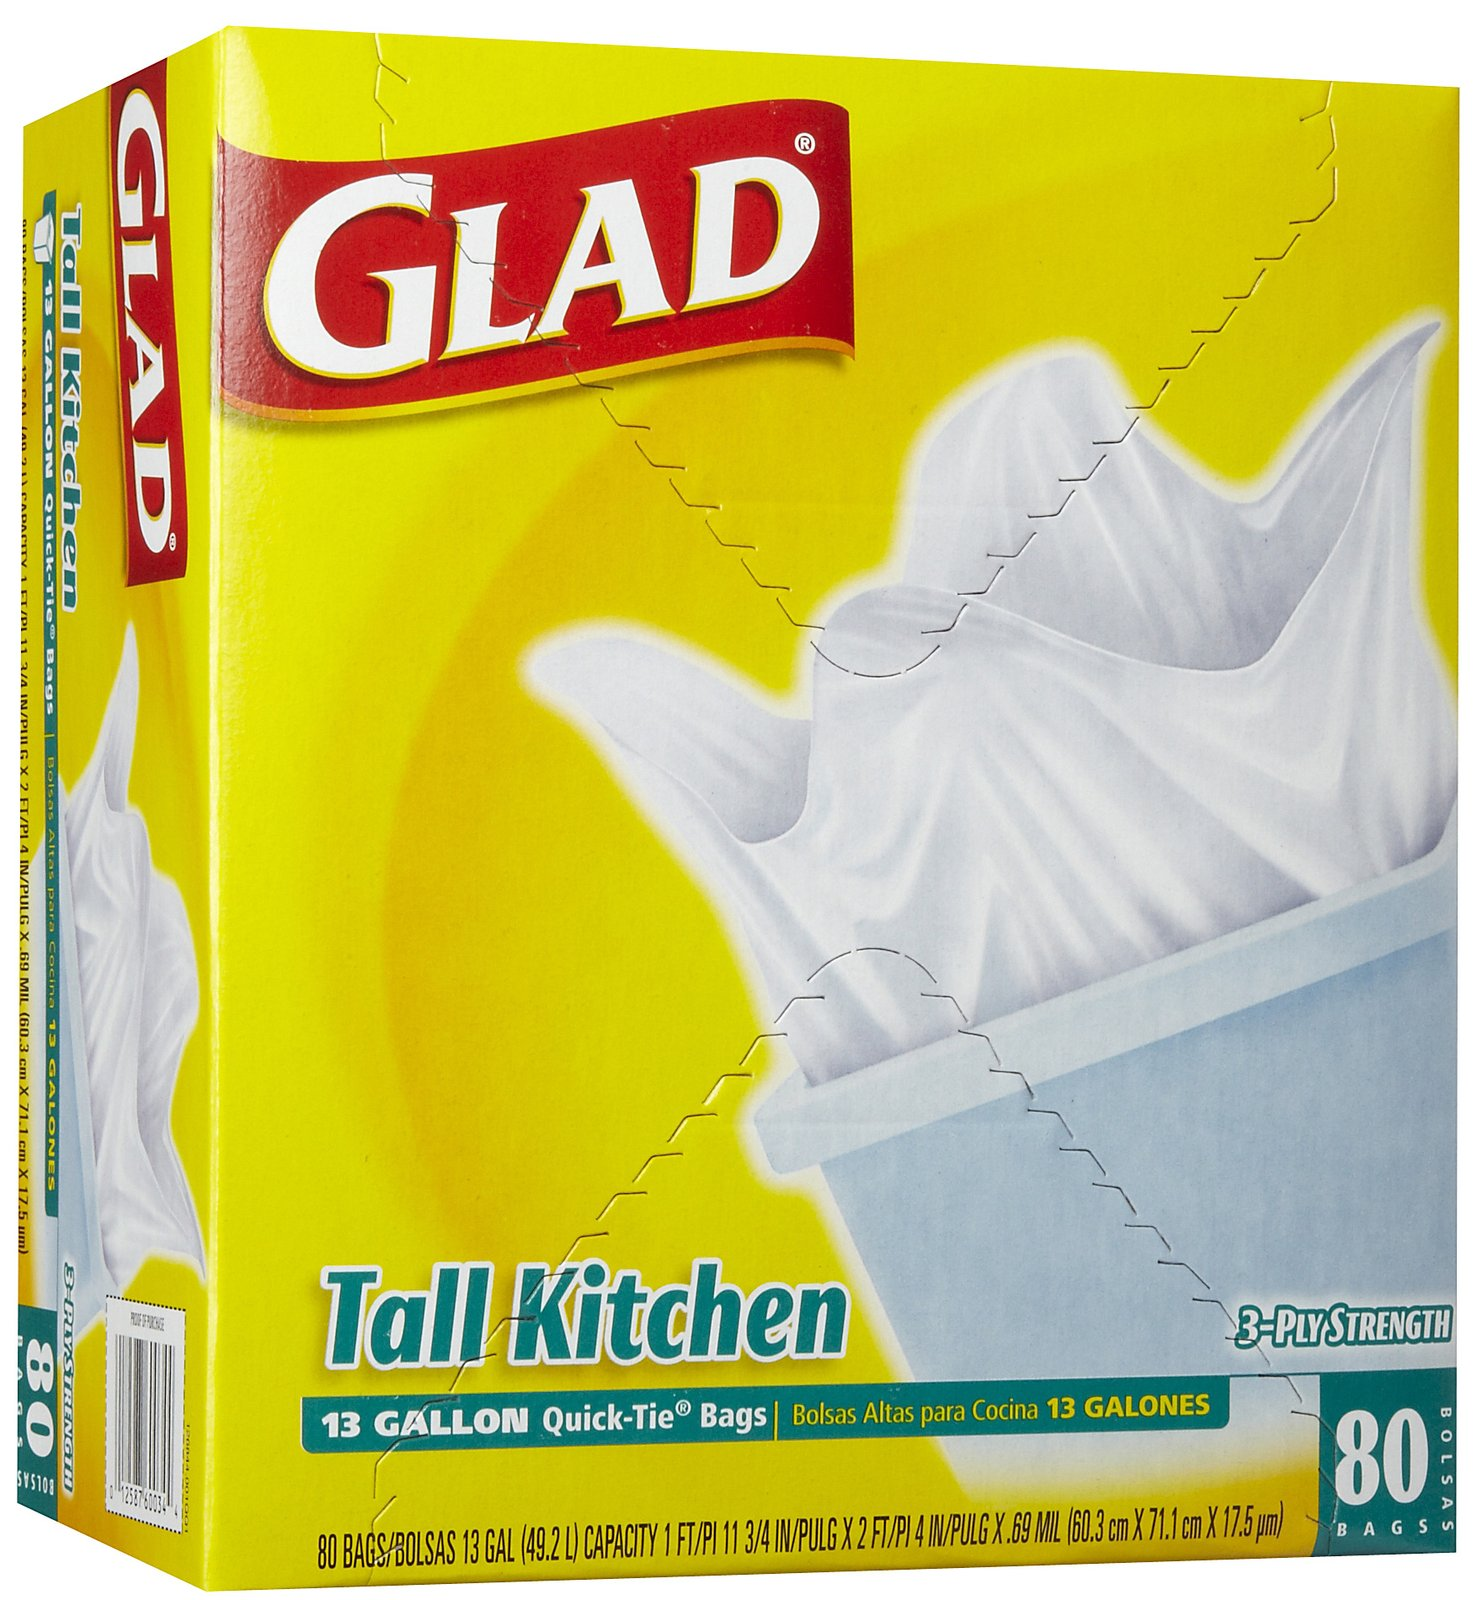 glad kitchen bags stainless steel stools 13 gallon white flap tie trash bag 4 80 case dovs by the